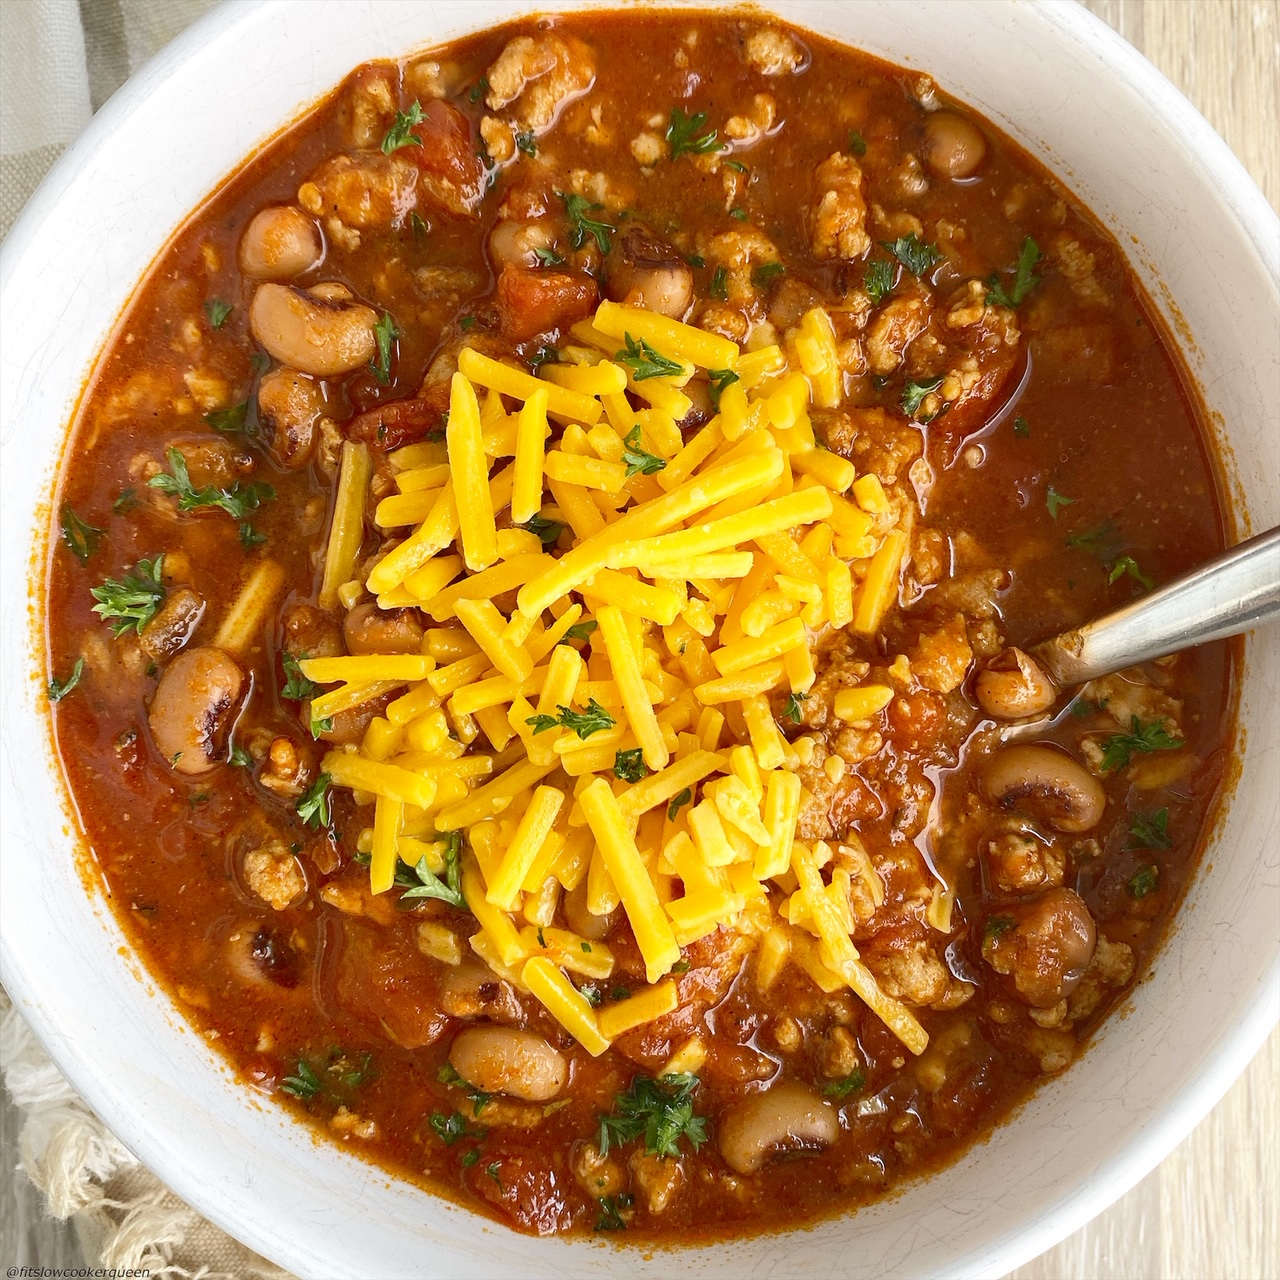 cooked soul food chili with cheese on top in a bowl